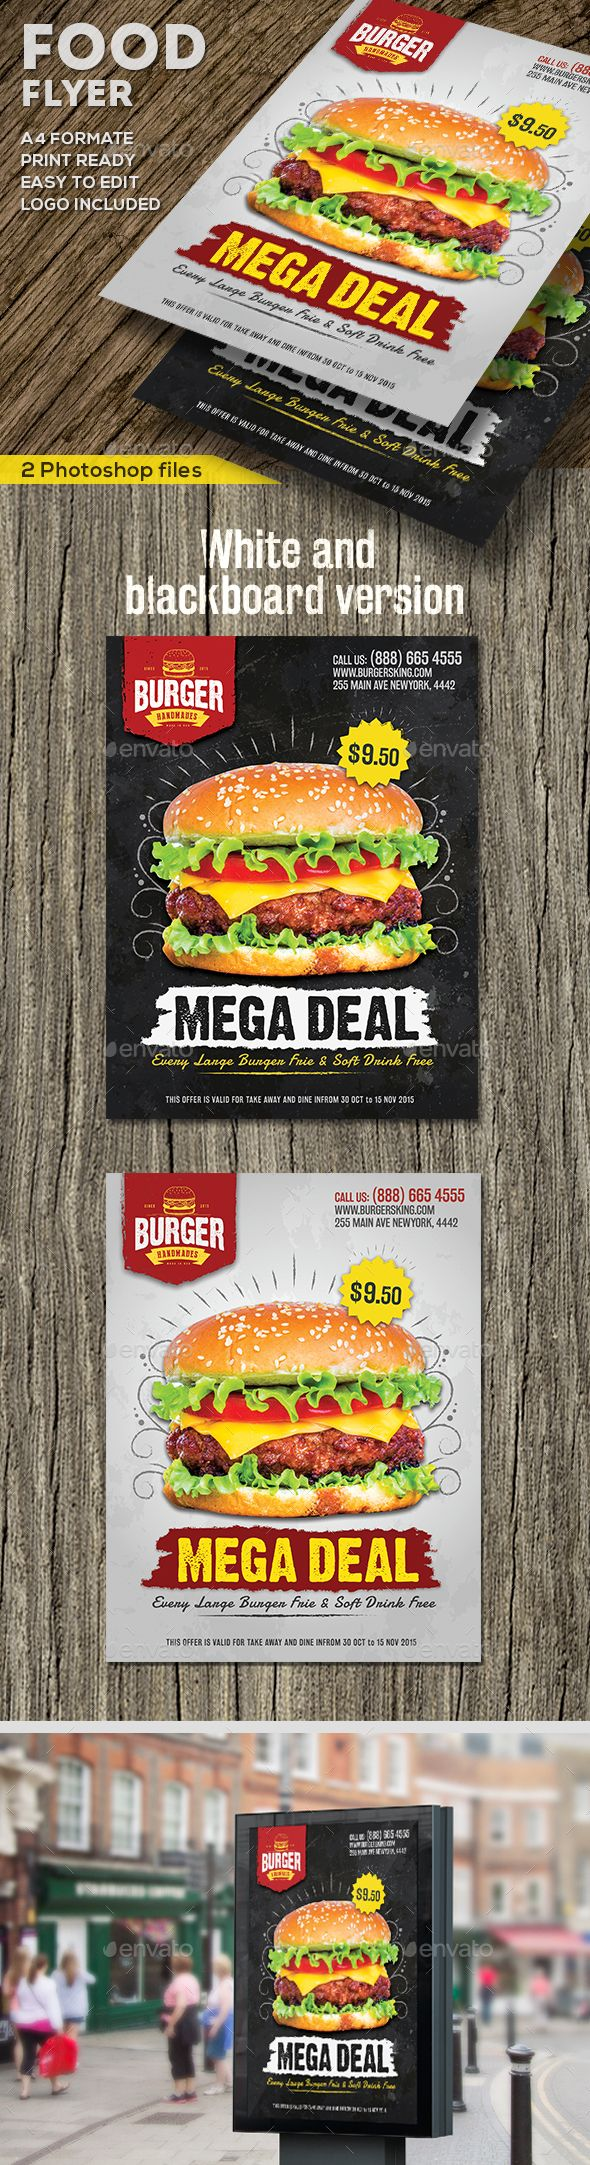 Food Promotional Flyer Template PSD